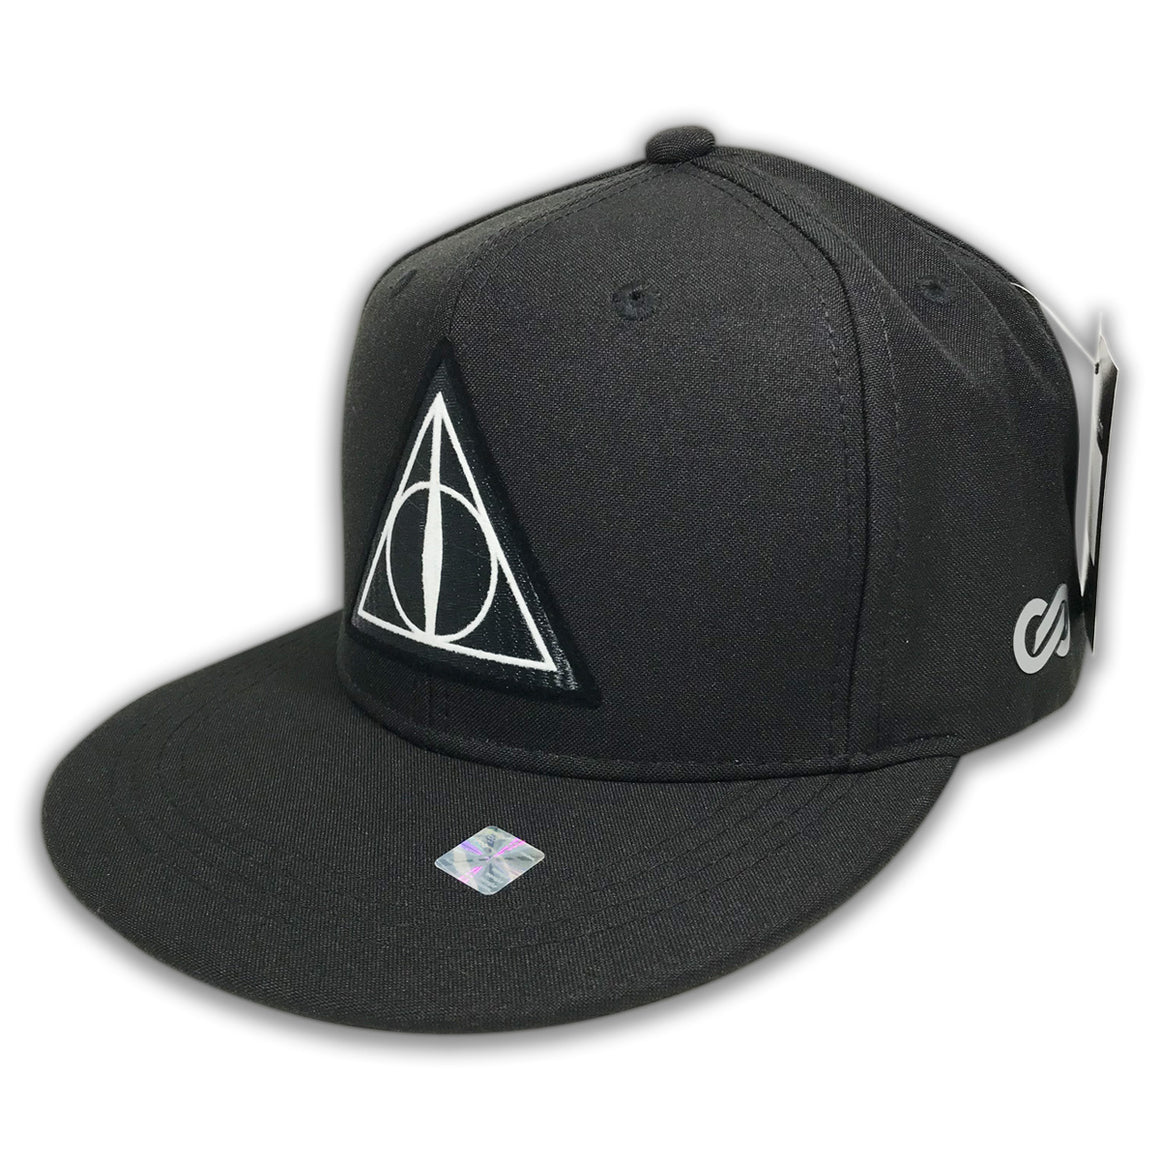 Gorra Harry Potter DEATHLY HALLOWS BLACK - SNAPBACK MX